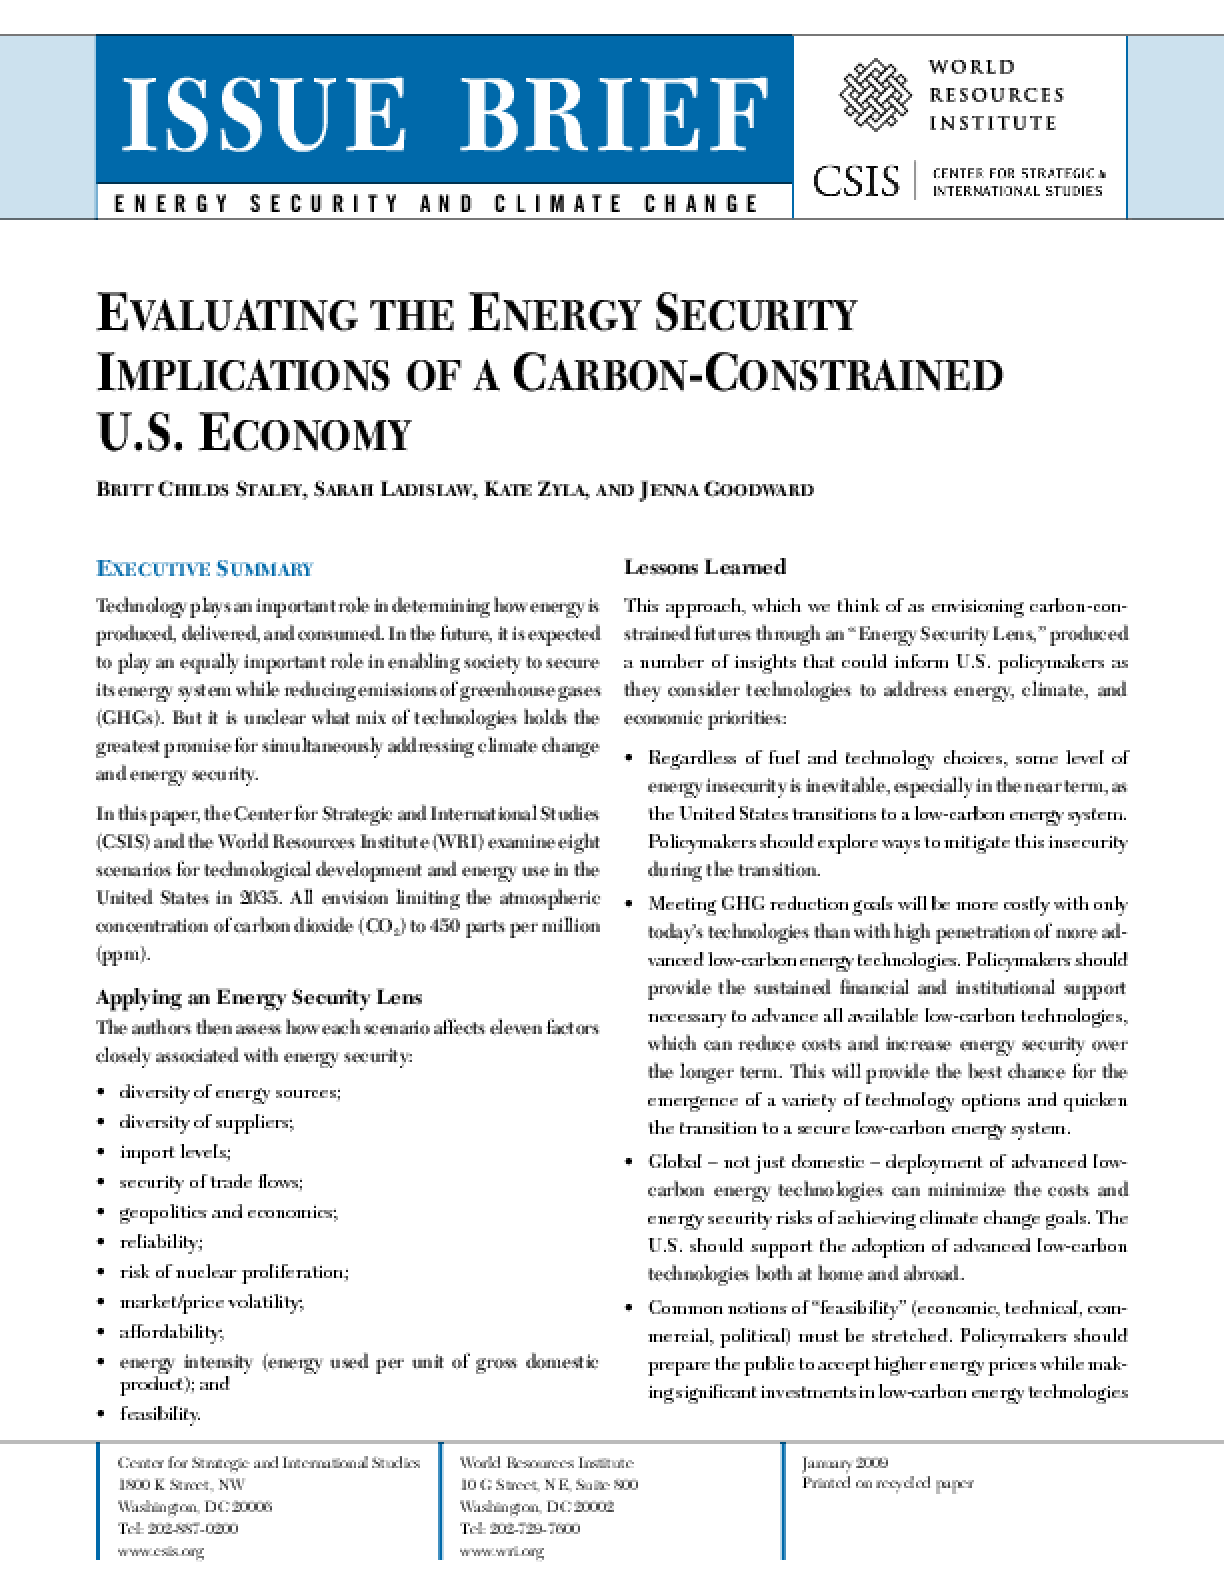 Evaluating the Energy Security Implications of a Carbon-Constrained U.S. Economy